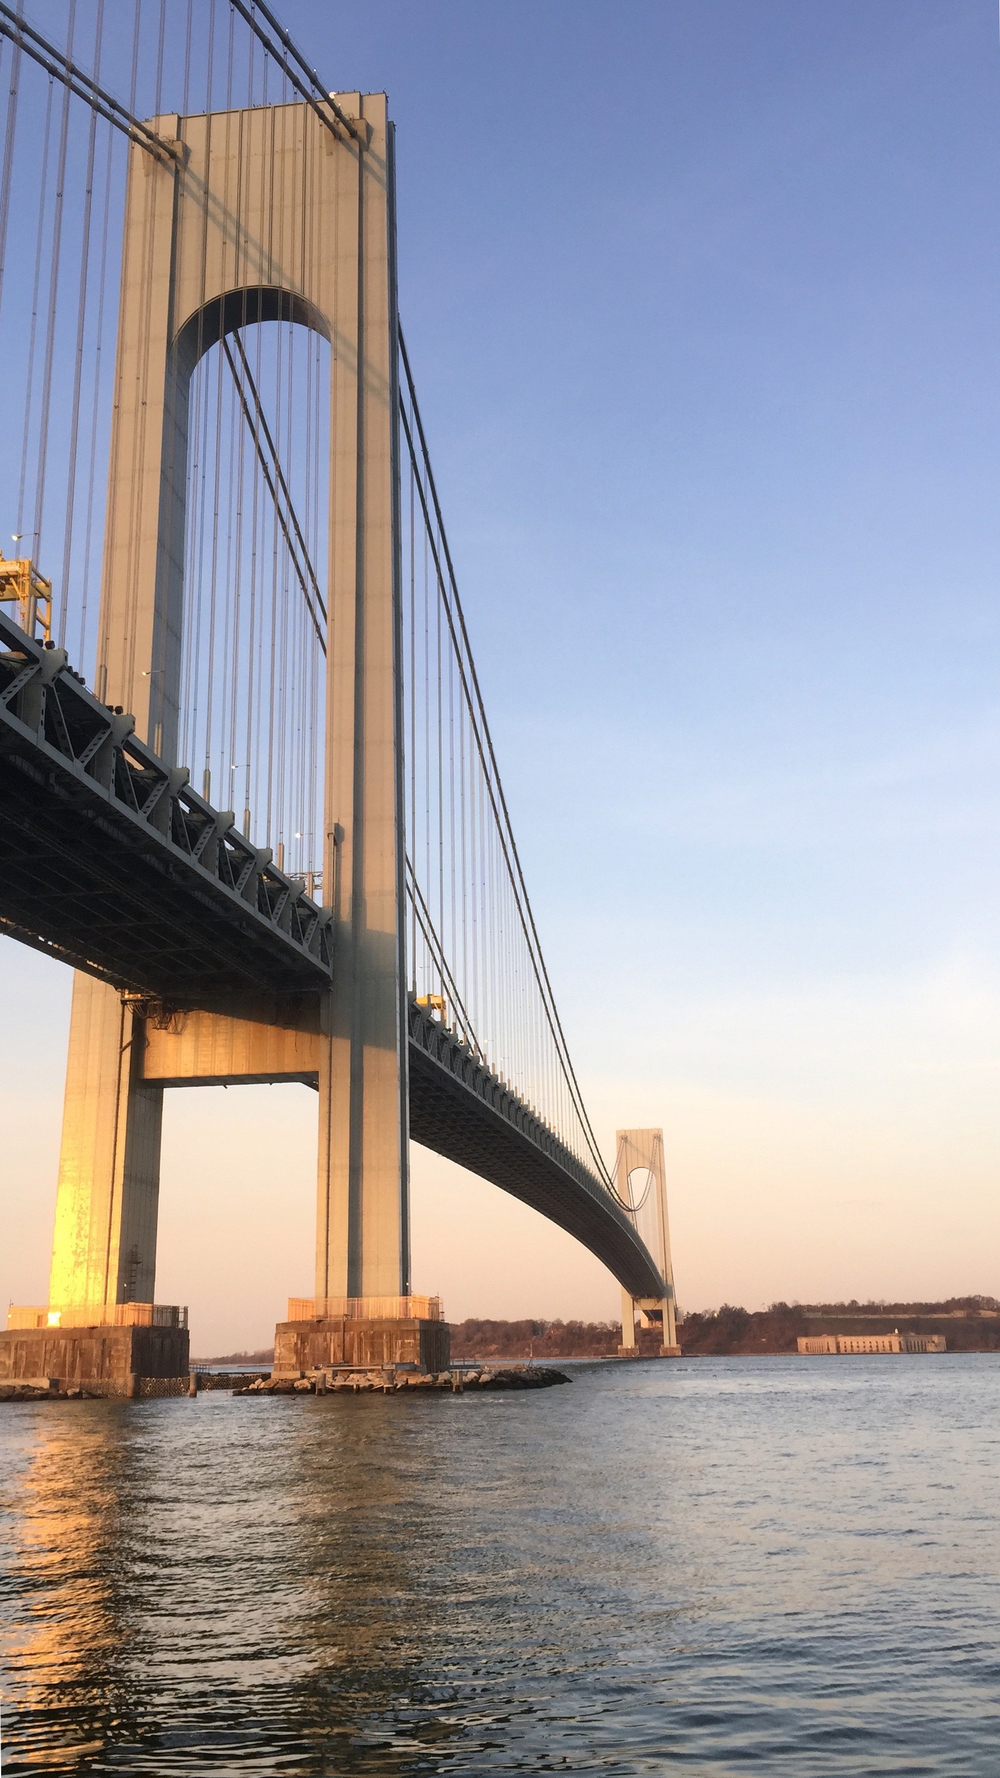 The Verrazano-Narrows Bridge glistens in the morning sun - March 24, 2016